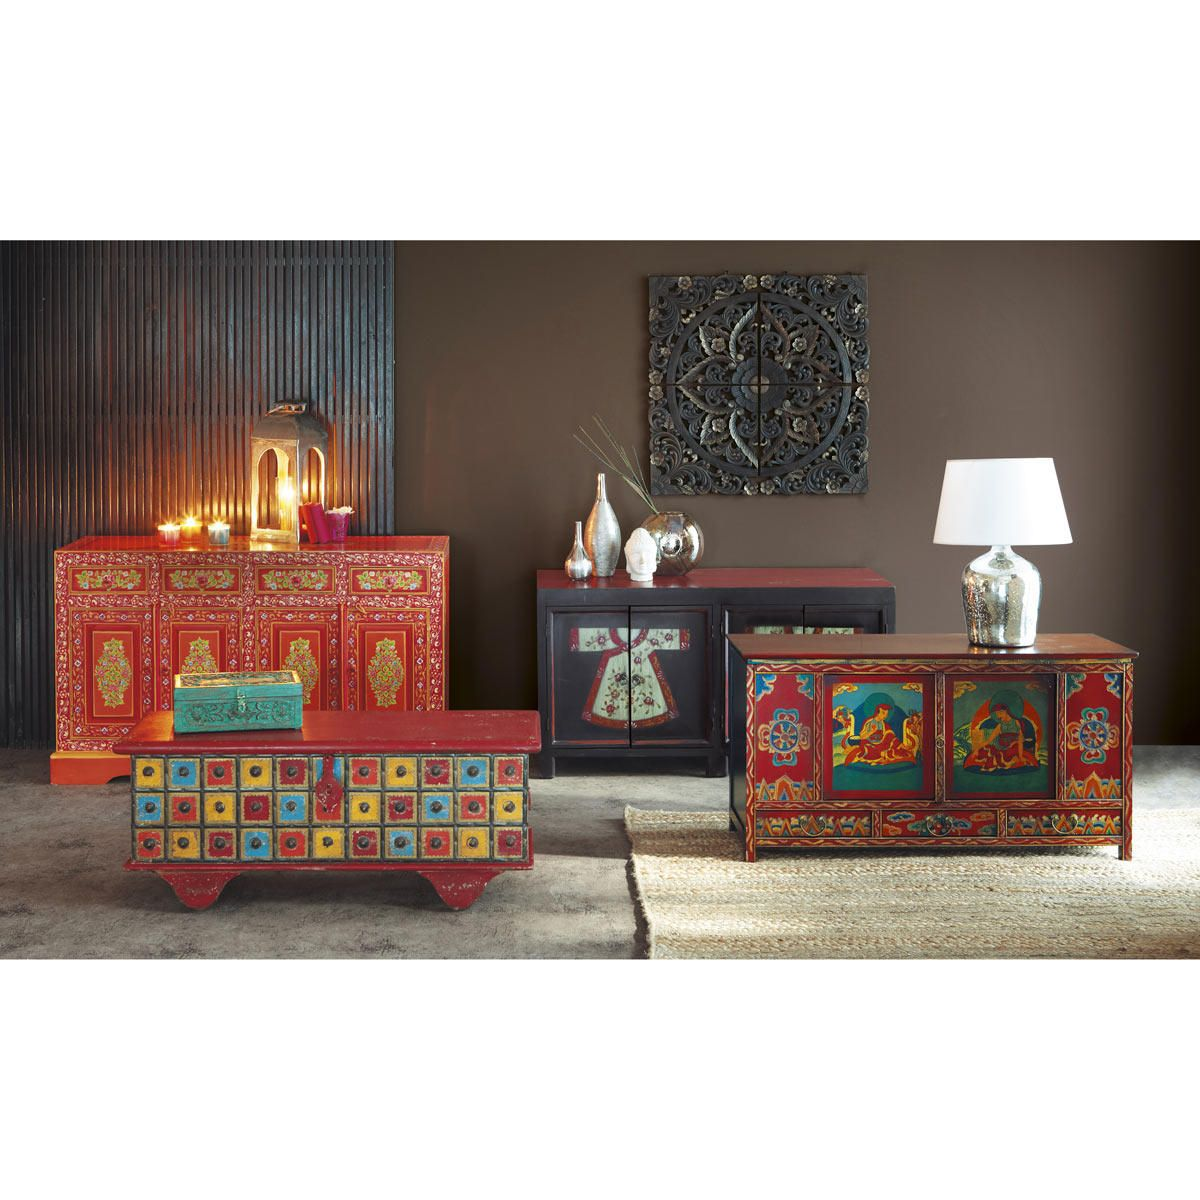 coffre indien en manguier multicolore l 115 cm gipsy maisons du monde maison du monde. Black Bedroom Furniture Sets. Home Design Ideas